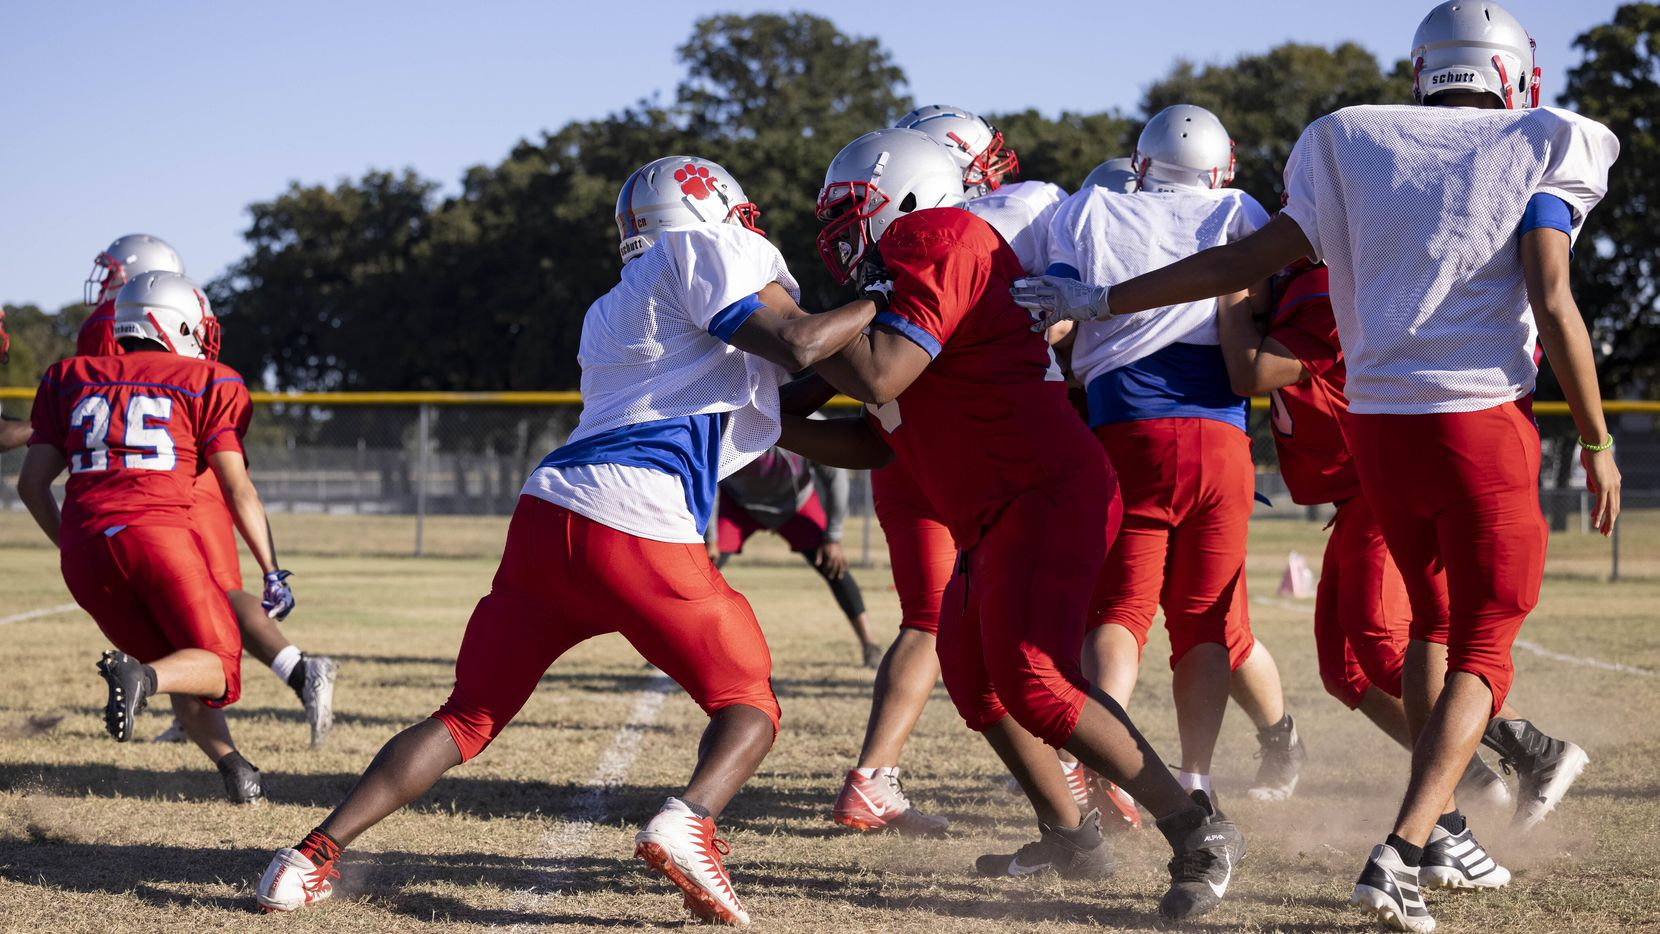 Spruce High School football players practice on Wednesday, Sept. 22, 2021, at H. Grady Spruce High School in Dallas. (Juan Figueroa/The Dallas Morning News)